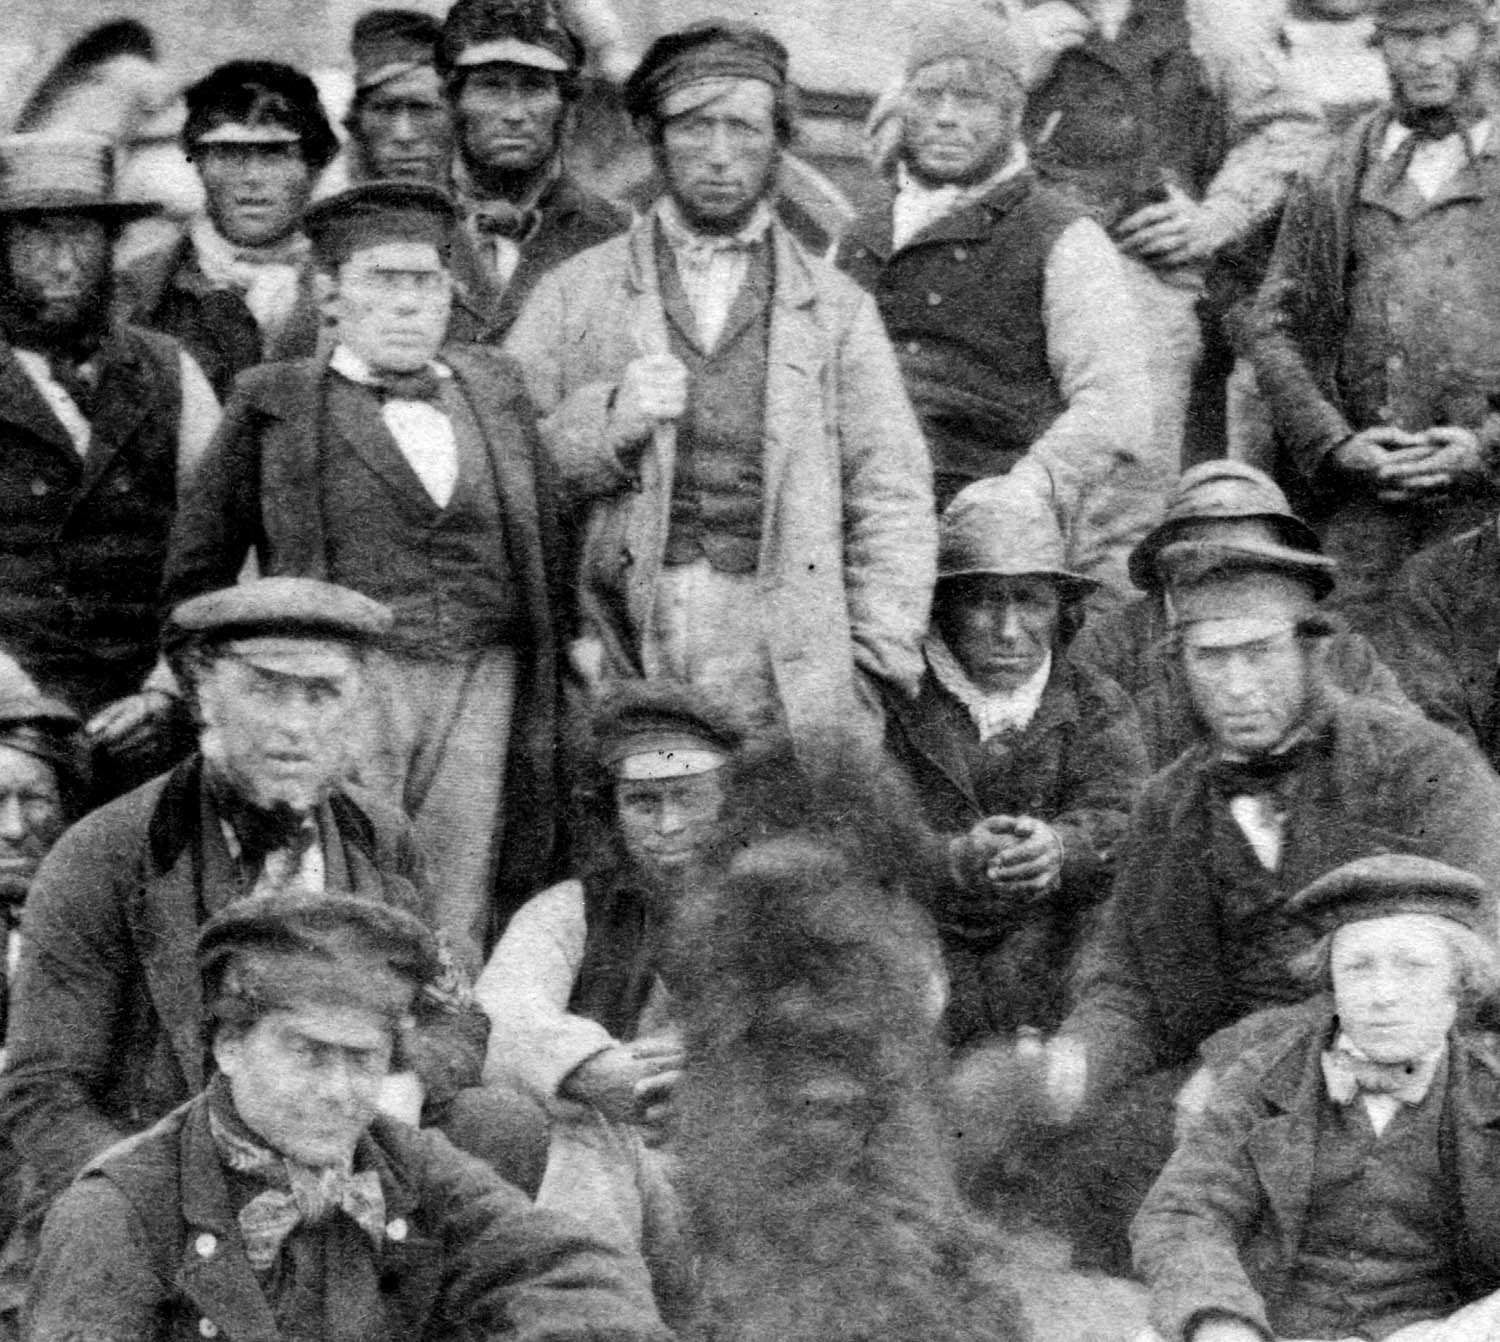 old image of a group of working men